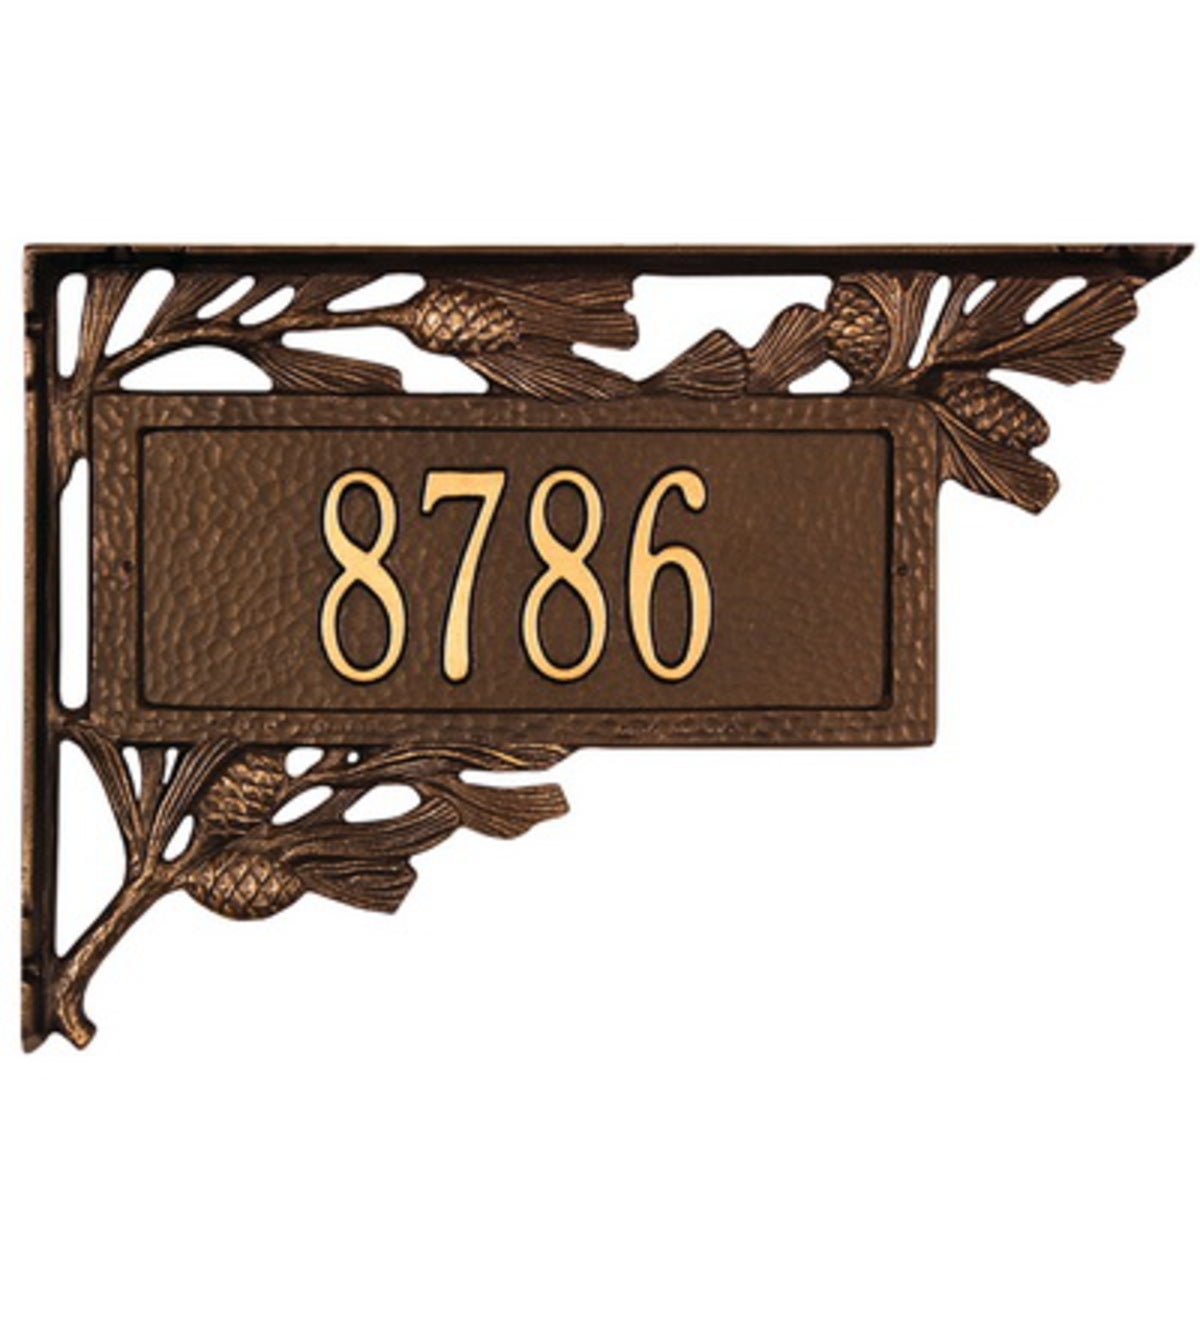 American-Made Personalized Pine Cone 2-Sided Mailbox Address Marker In Cast Aluminum